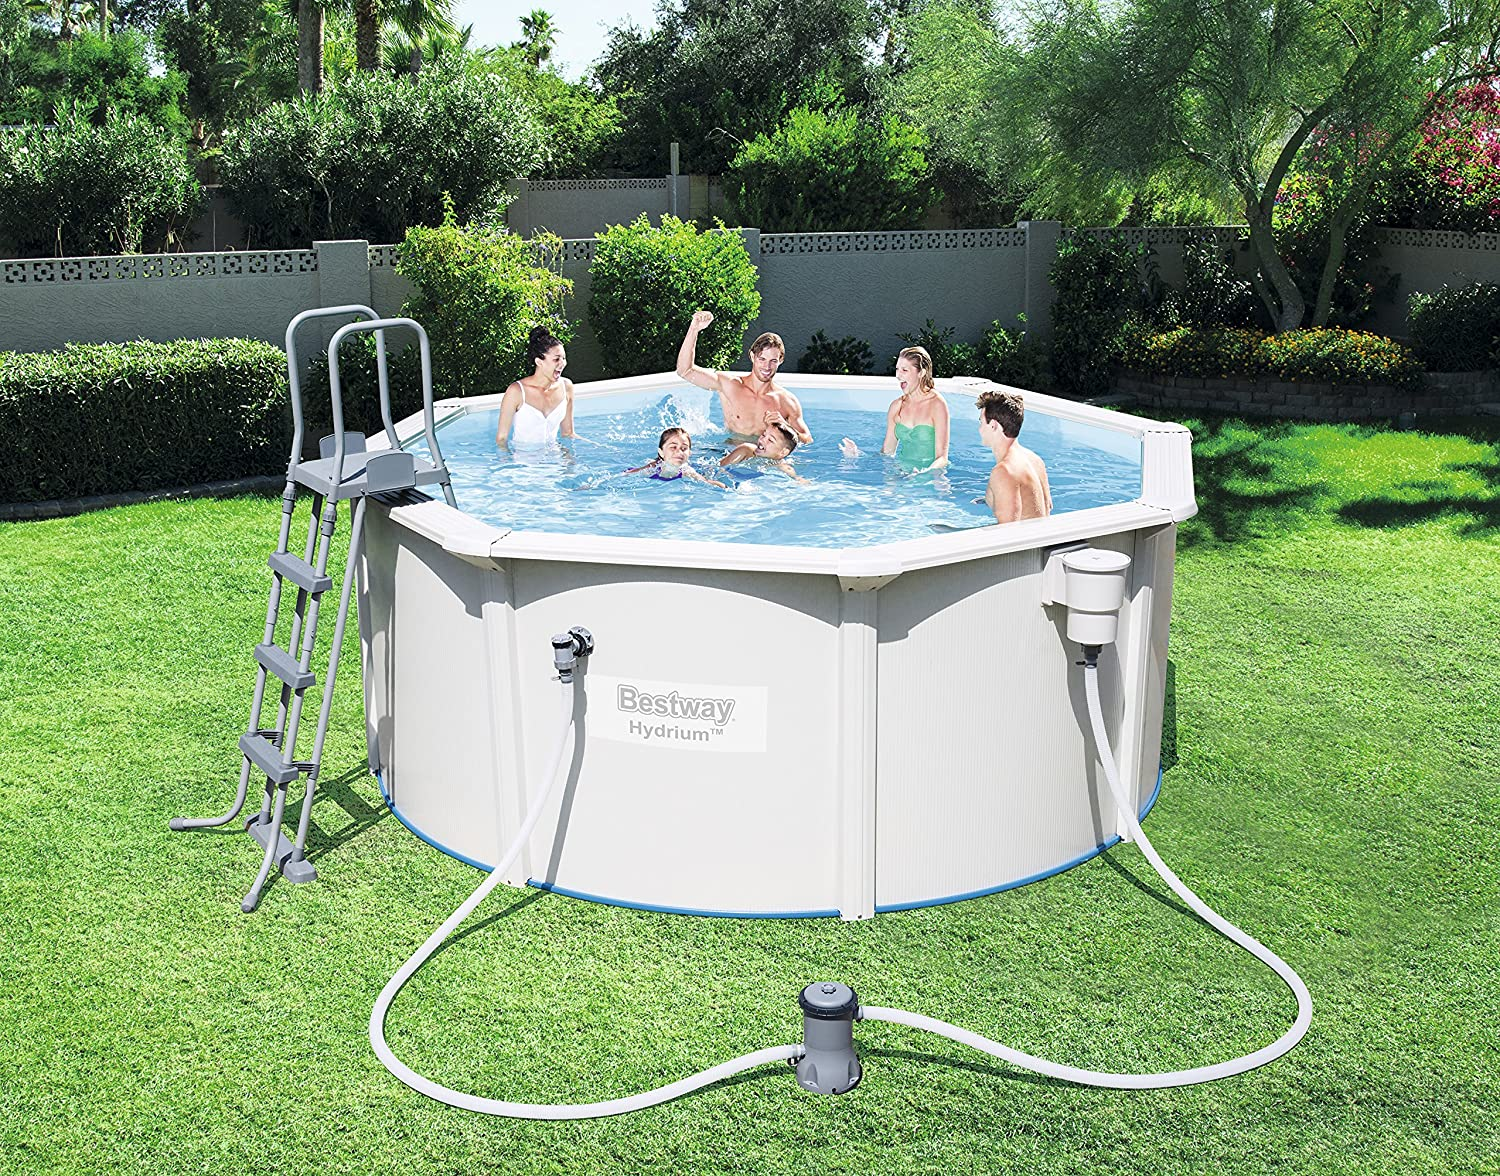 Bestway Best Way - Piscina Desmontable de Acero hydrium 300x120 cm ...